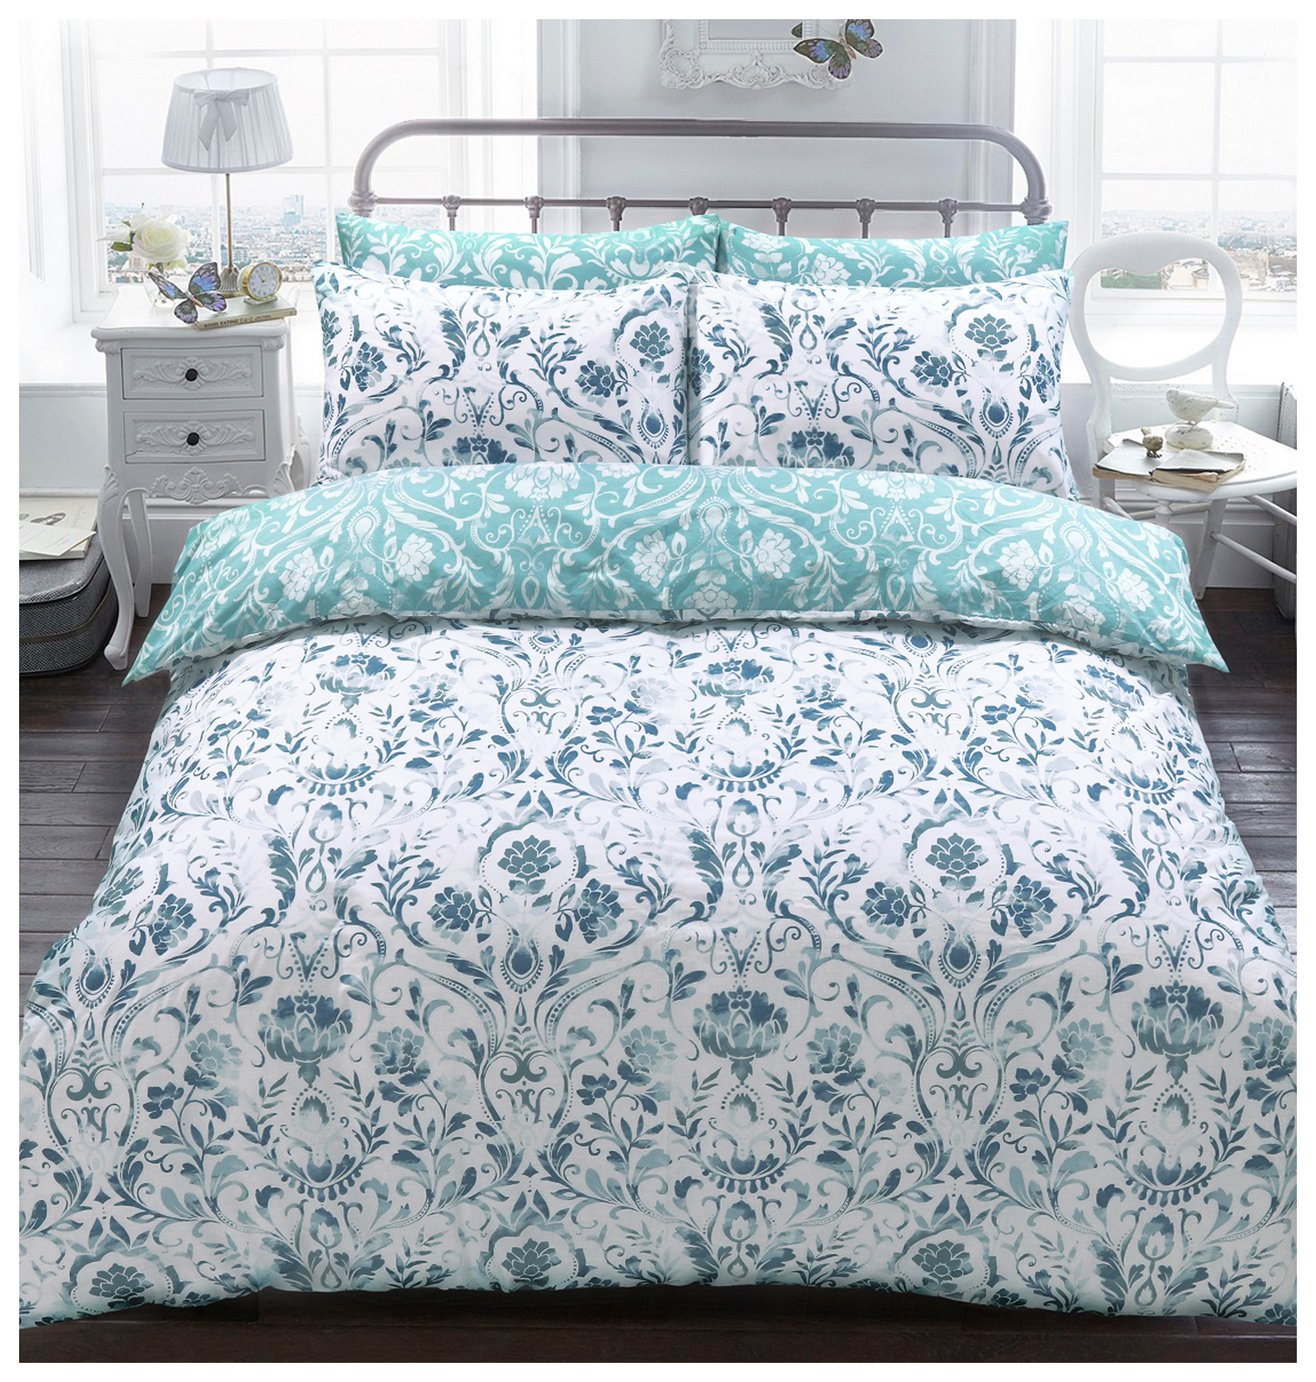 Argos Home Teal Painted Damask Bedding Set - Kingsize